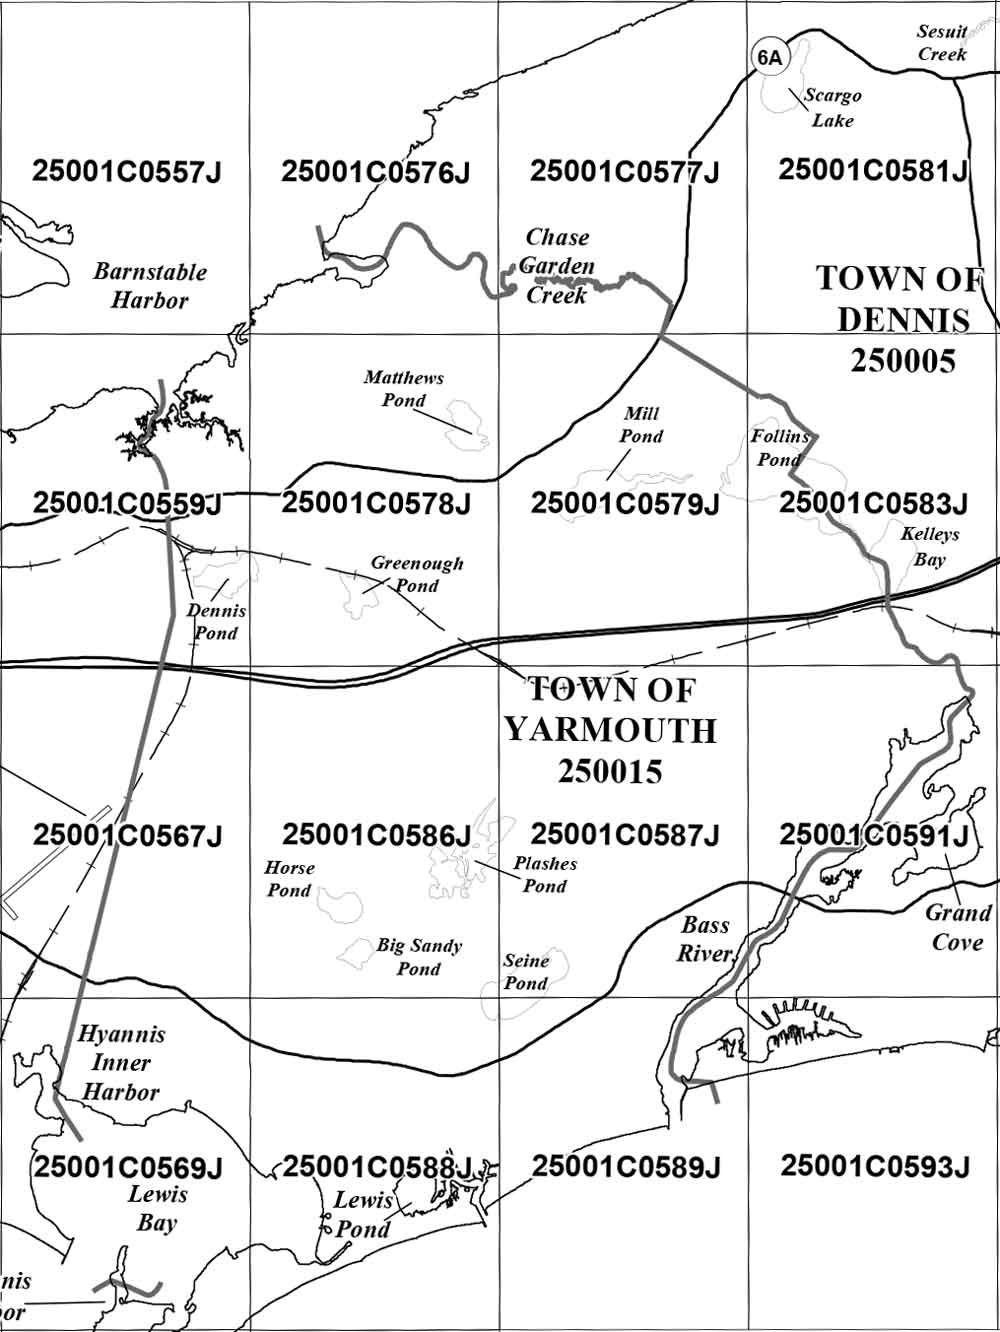 Worksheet. Cape Cod FEMA Flood Maps  The Furies